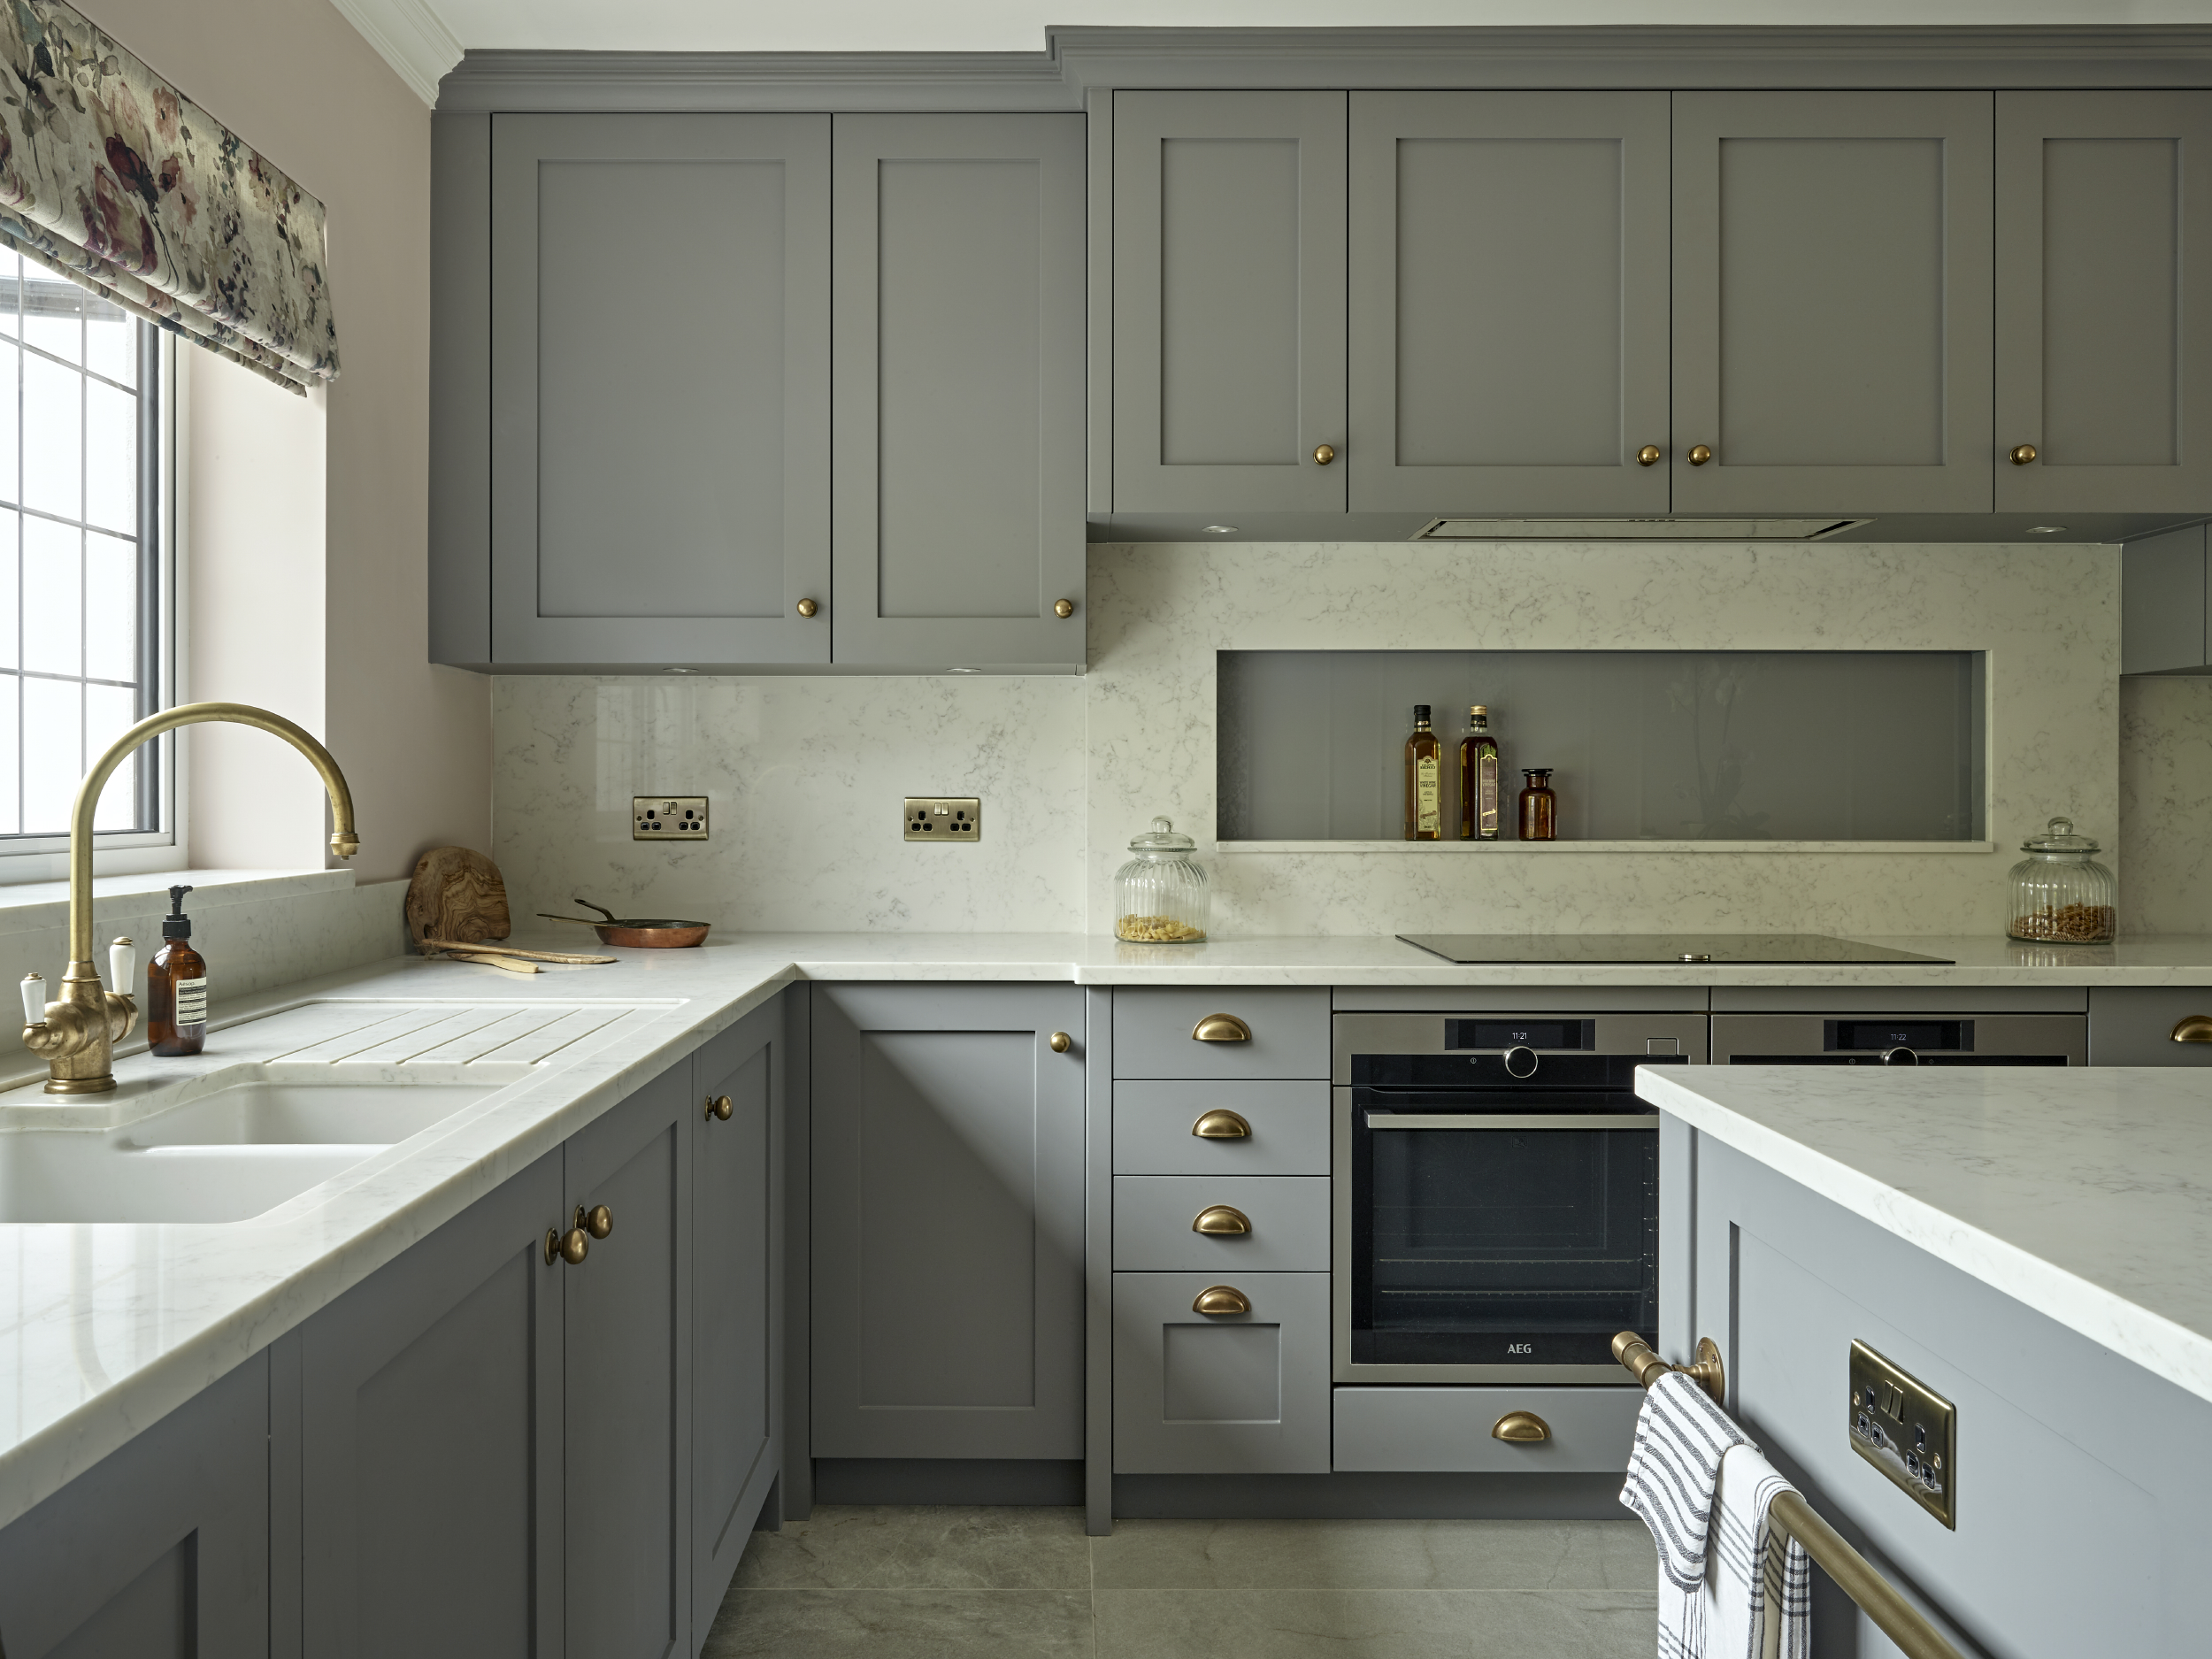 Choosing the Right Countertop to Match Your Kitchen Cabinets by Brayer Design